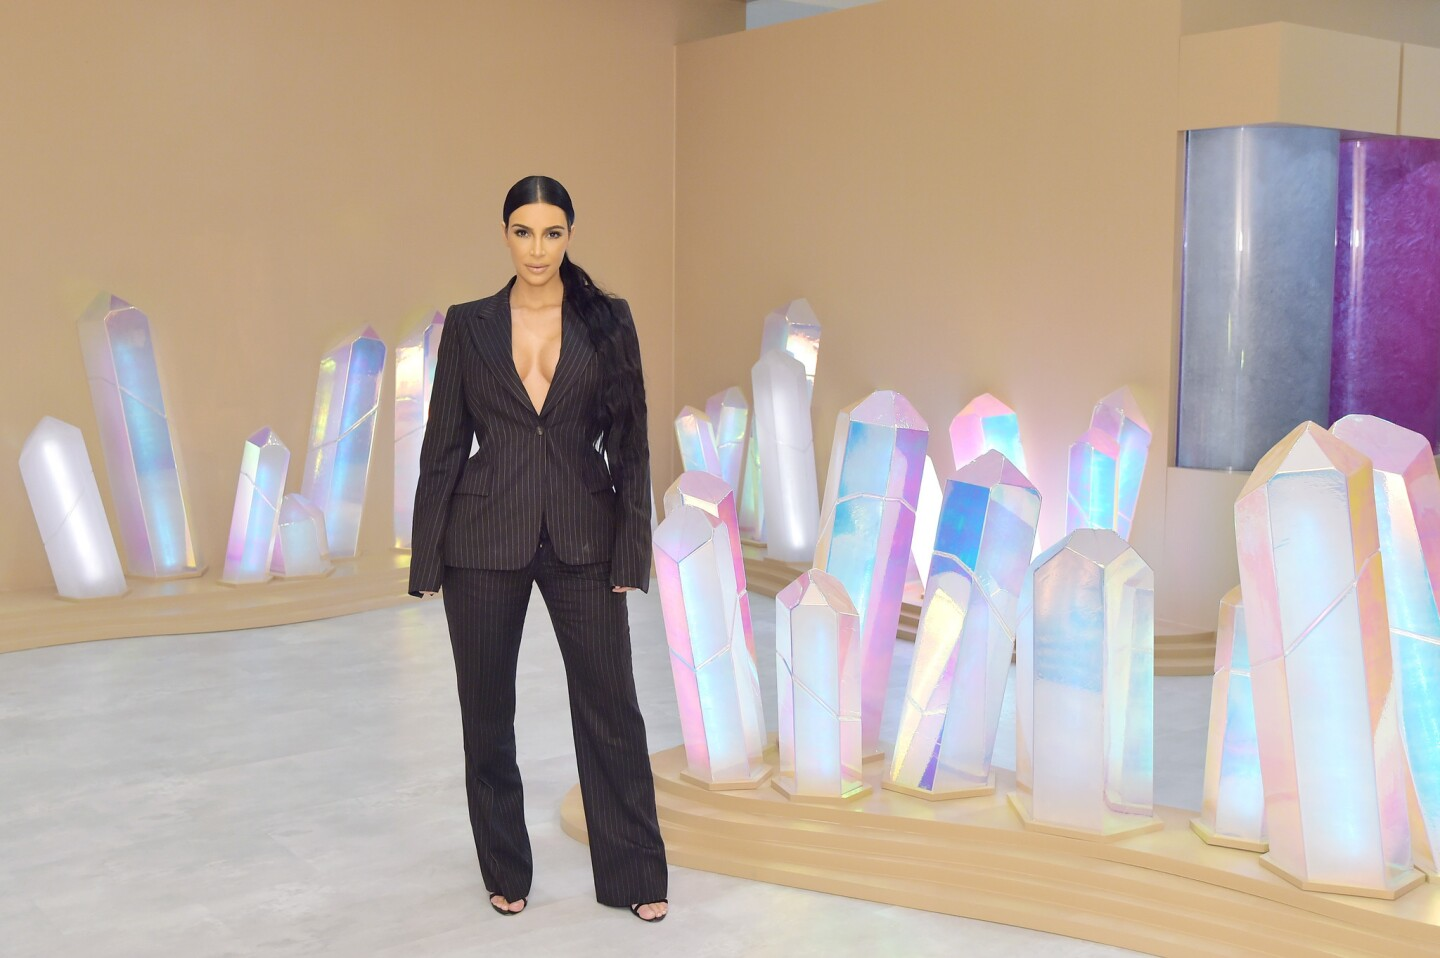 Kim Kardashian West attends the KKW Beauty and Fragrance pop-up at South Coast Plaza on Dec. 4, 2018, in Costa Mesa.